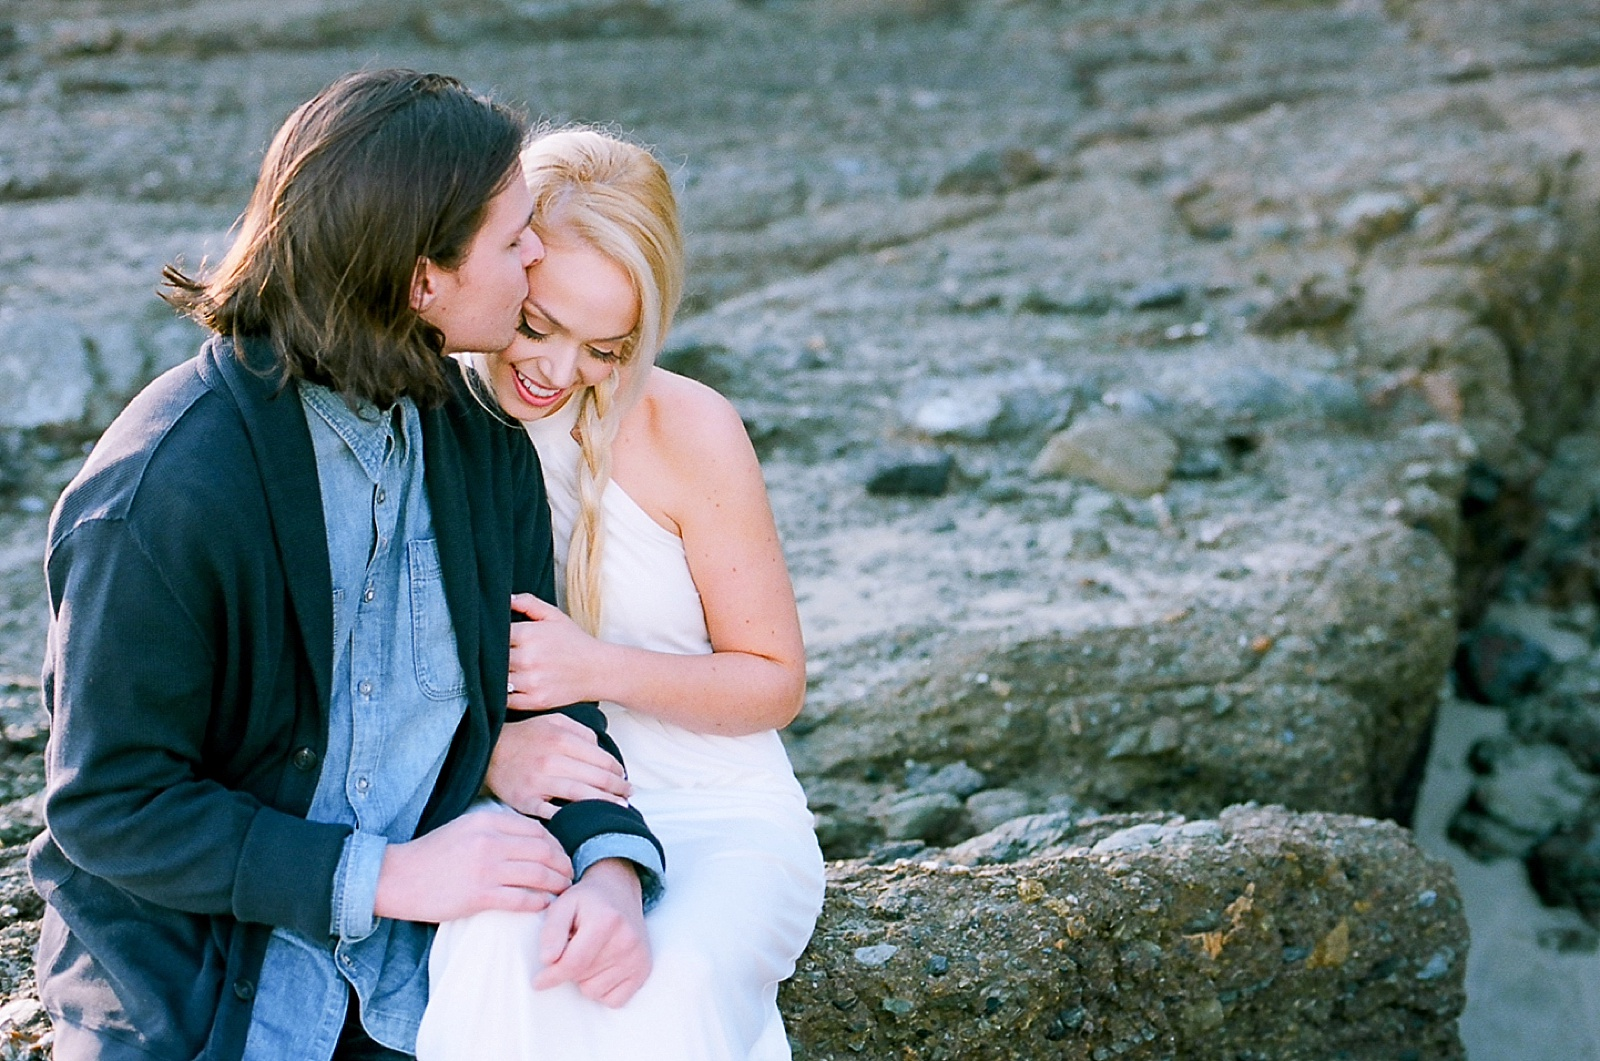 Beach couple's session on film by North Carolina photographer Lauren Nygard